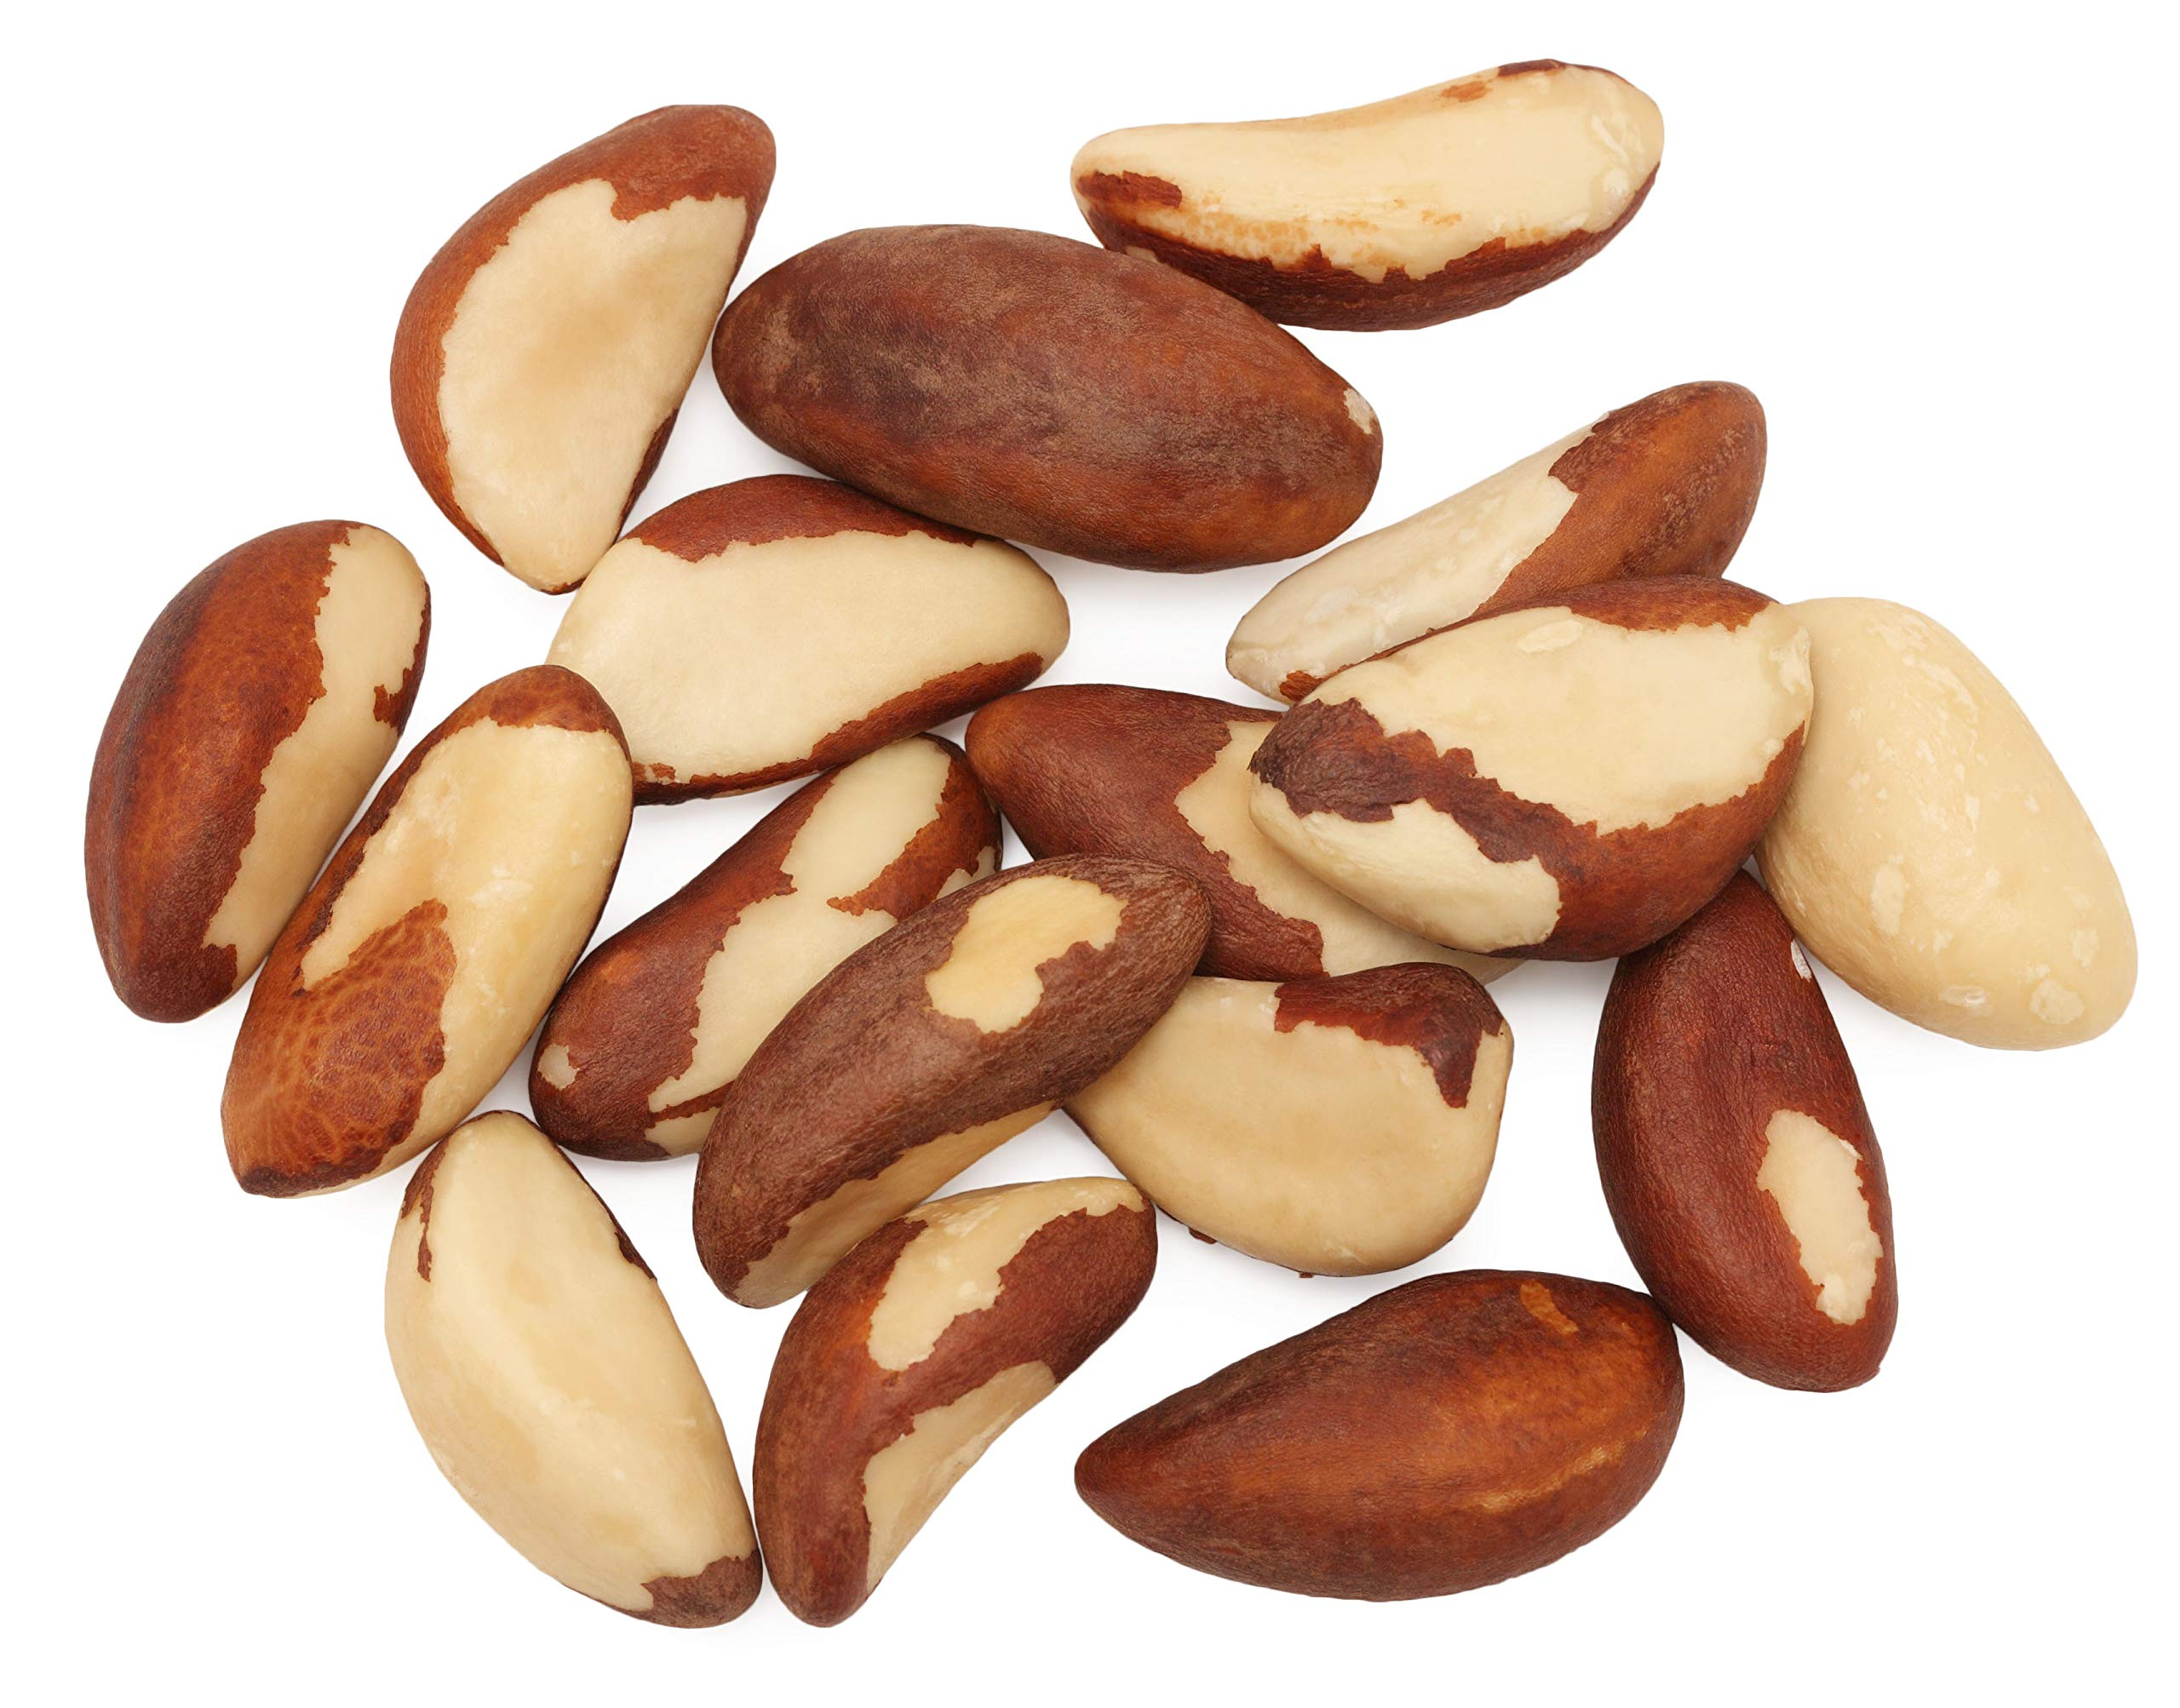 Anna and Sarah Organic Raw Brazil Nuts 2 Lbs in Resealable Bag by Anna and Sarah (Image #1)